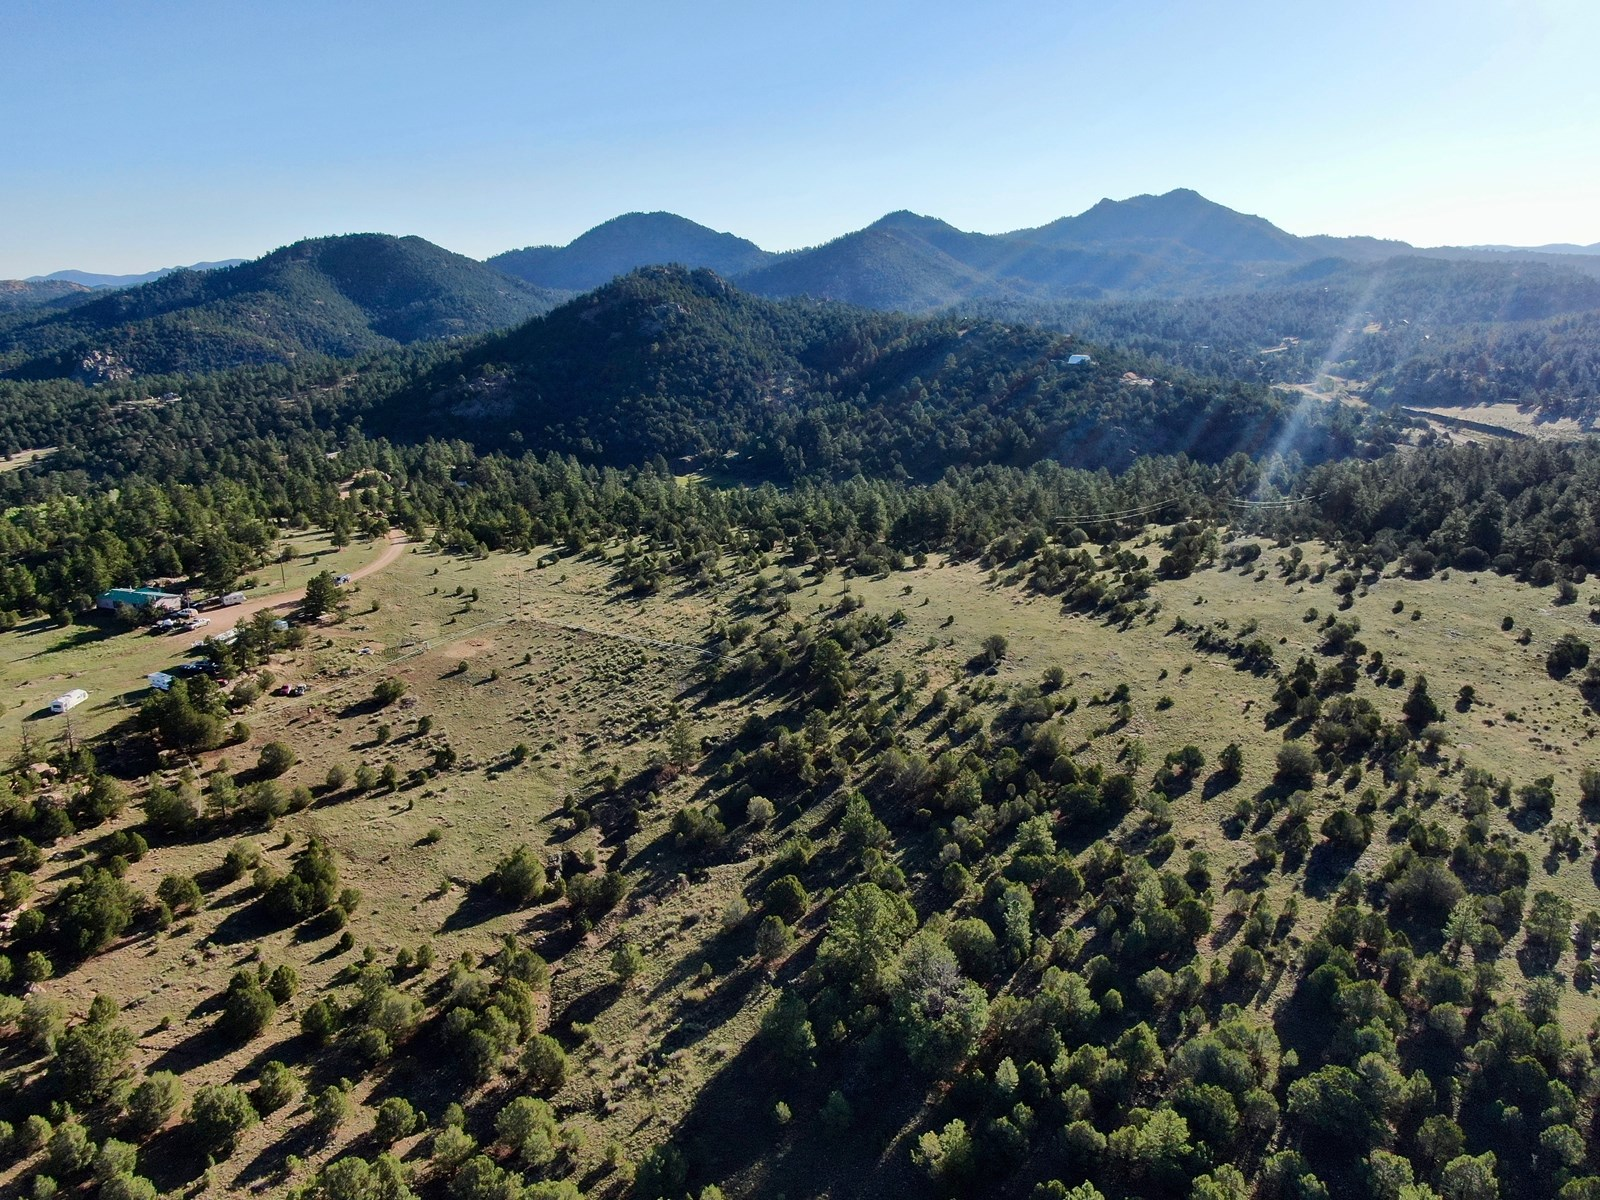 17.81 Acre Lot with Breathtaking Views of the Mountains